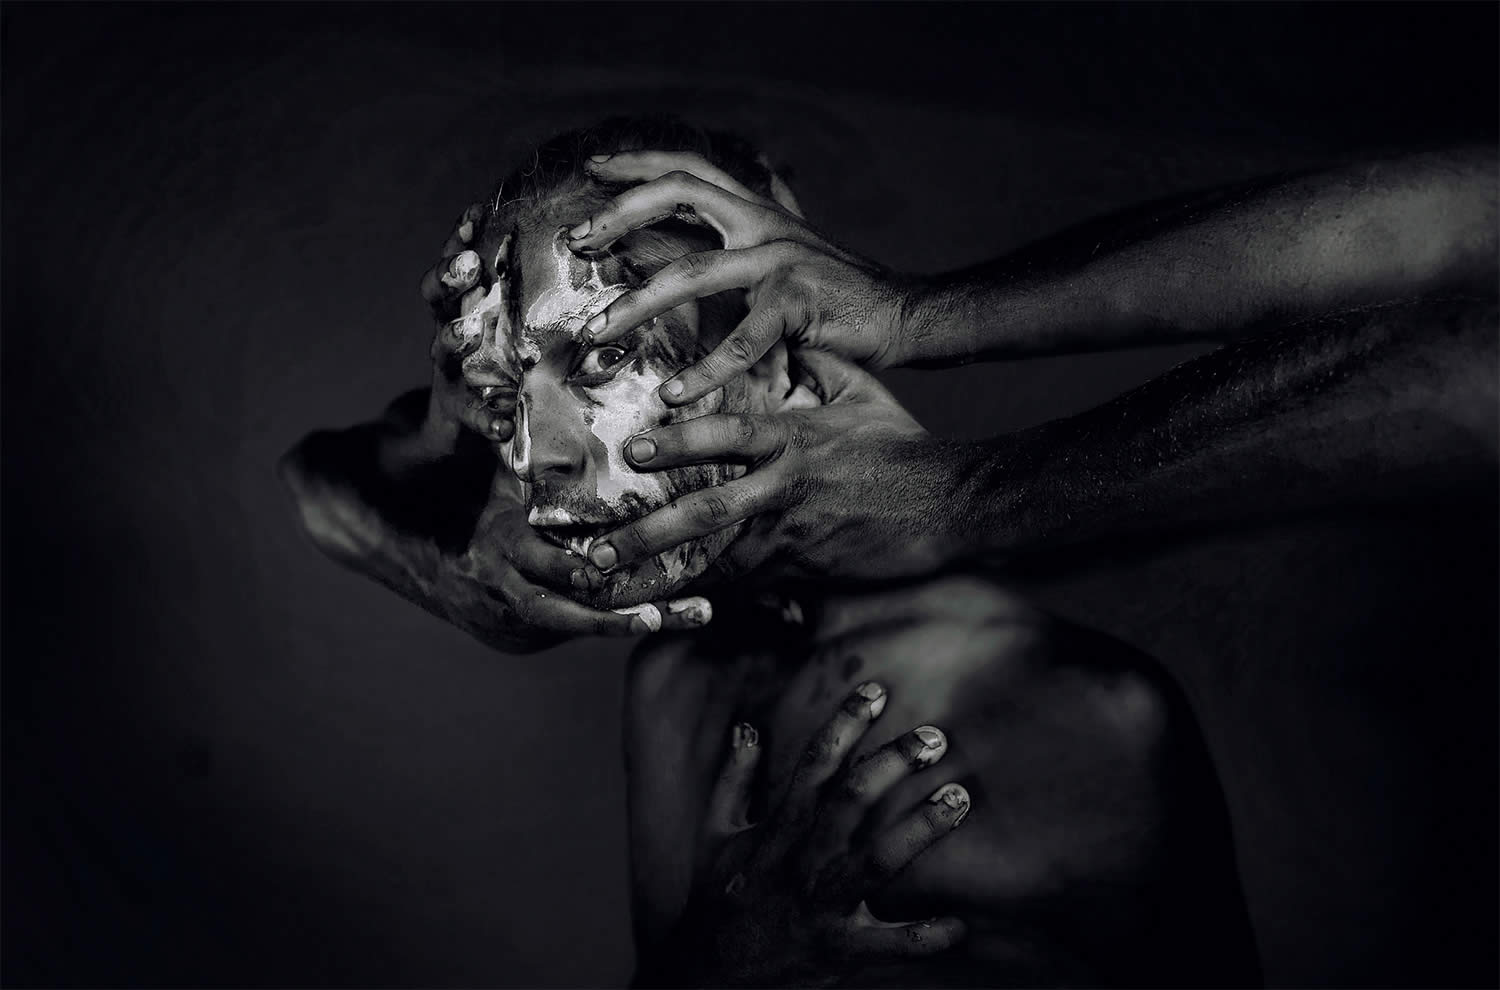 mud and face and hands, photo by kavan cardoza